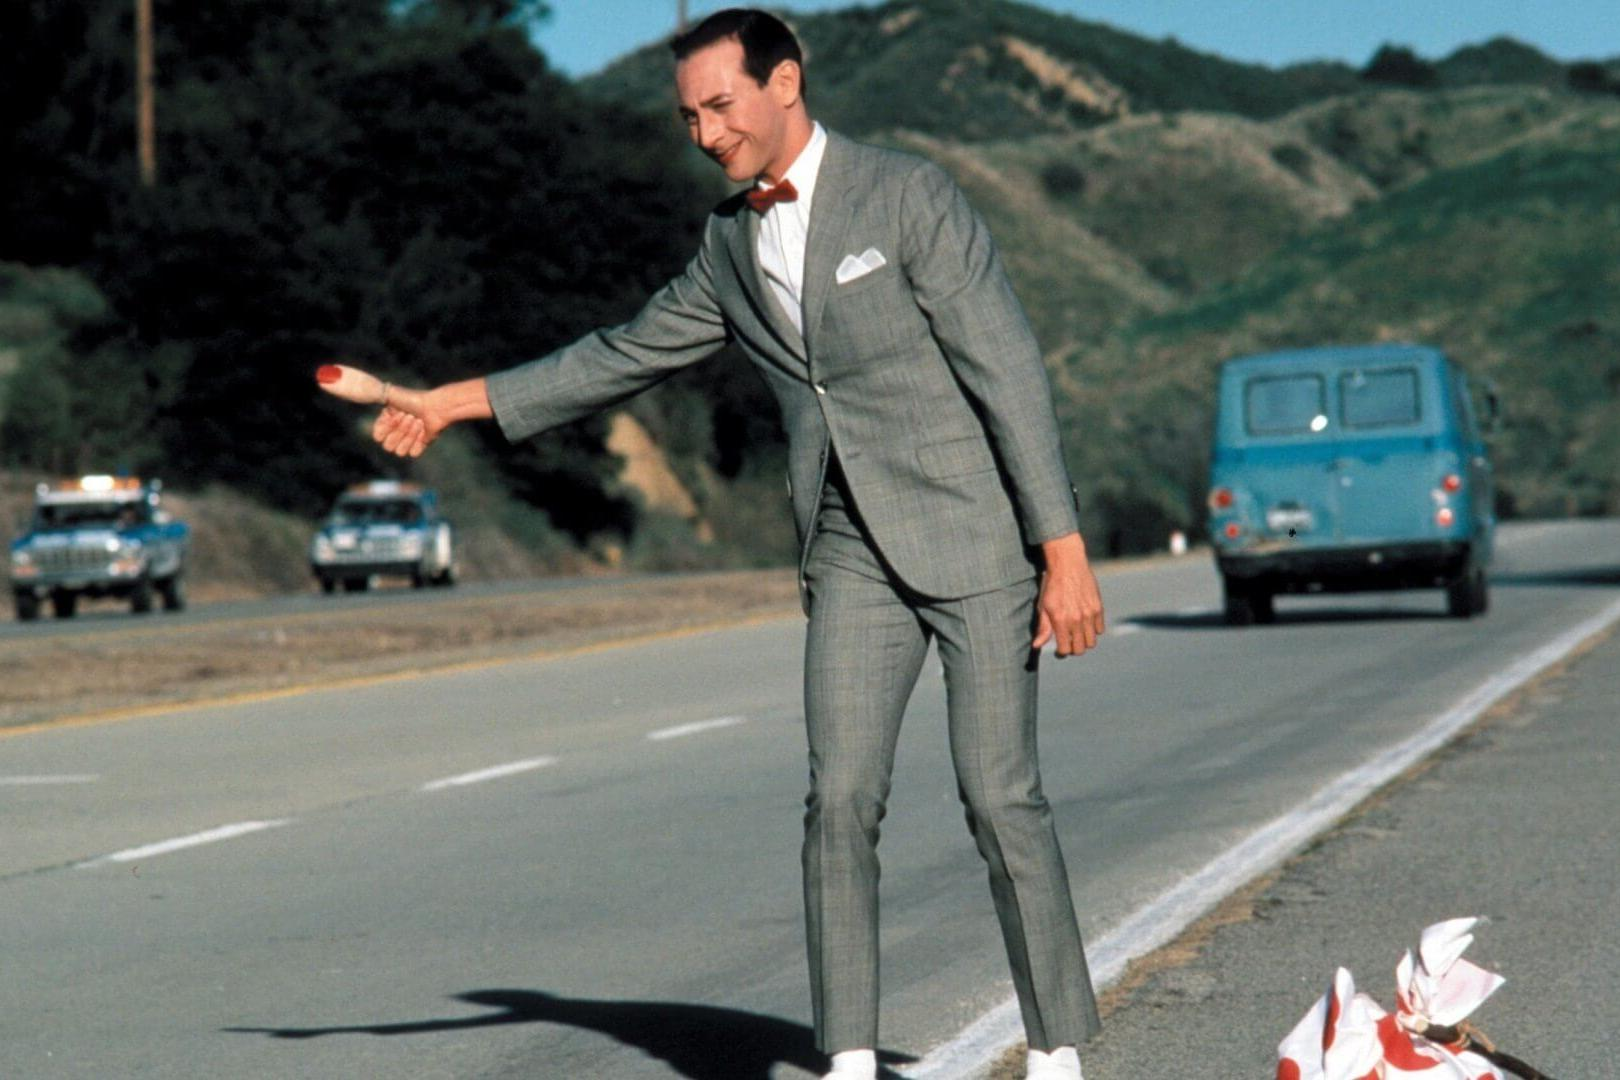 Still image from Pee-wee's Big Adventure